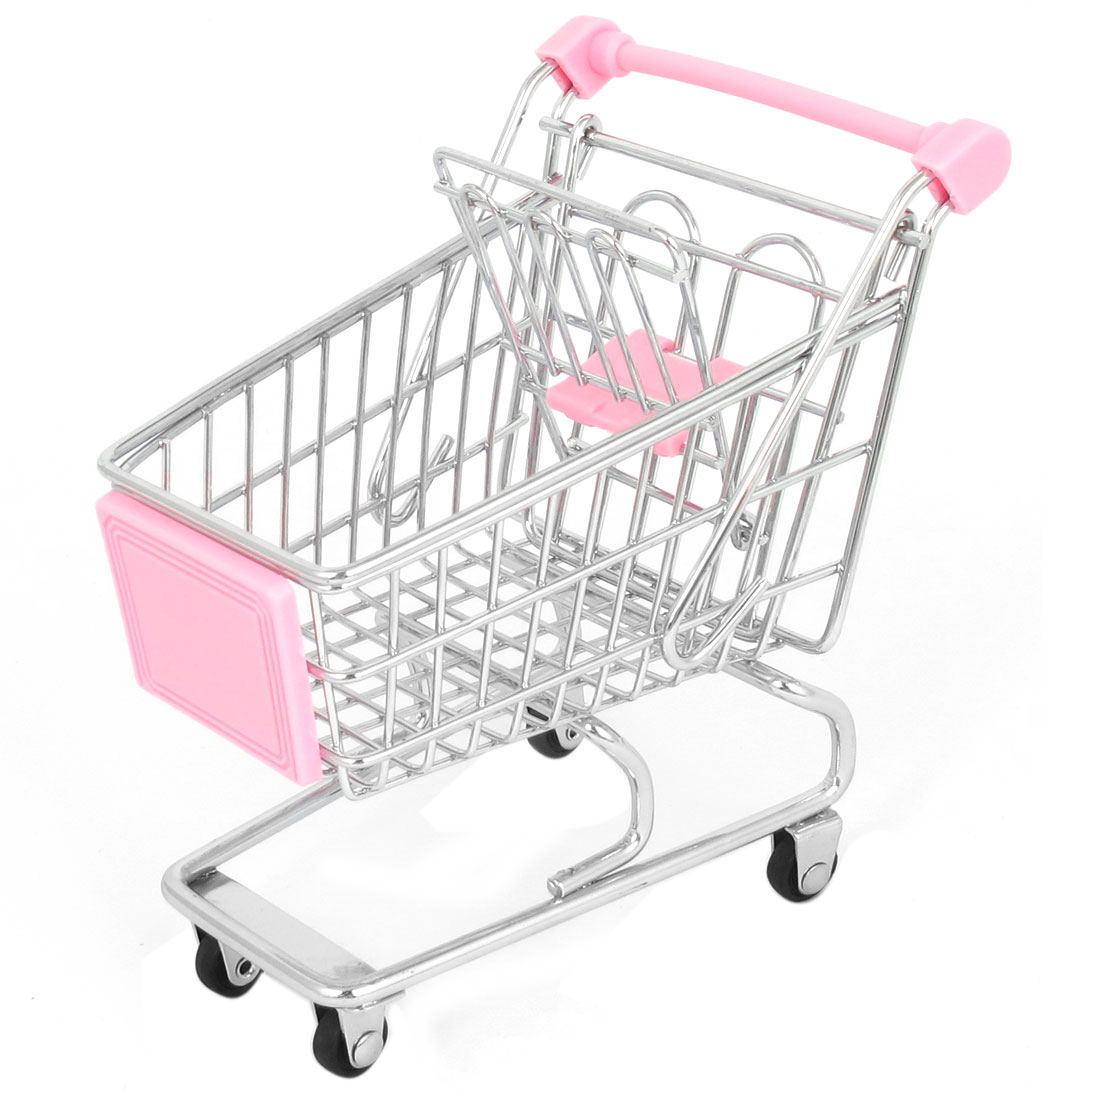 Stainless Steel Mini-Shopping Supermarket Handcart Shopping Utility Cart Mode Pink